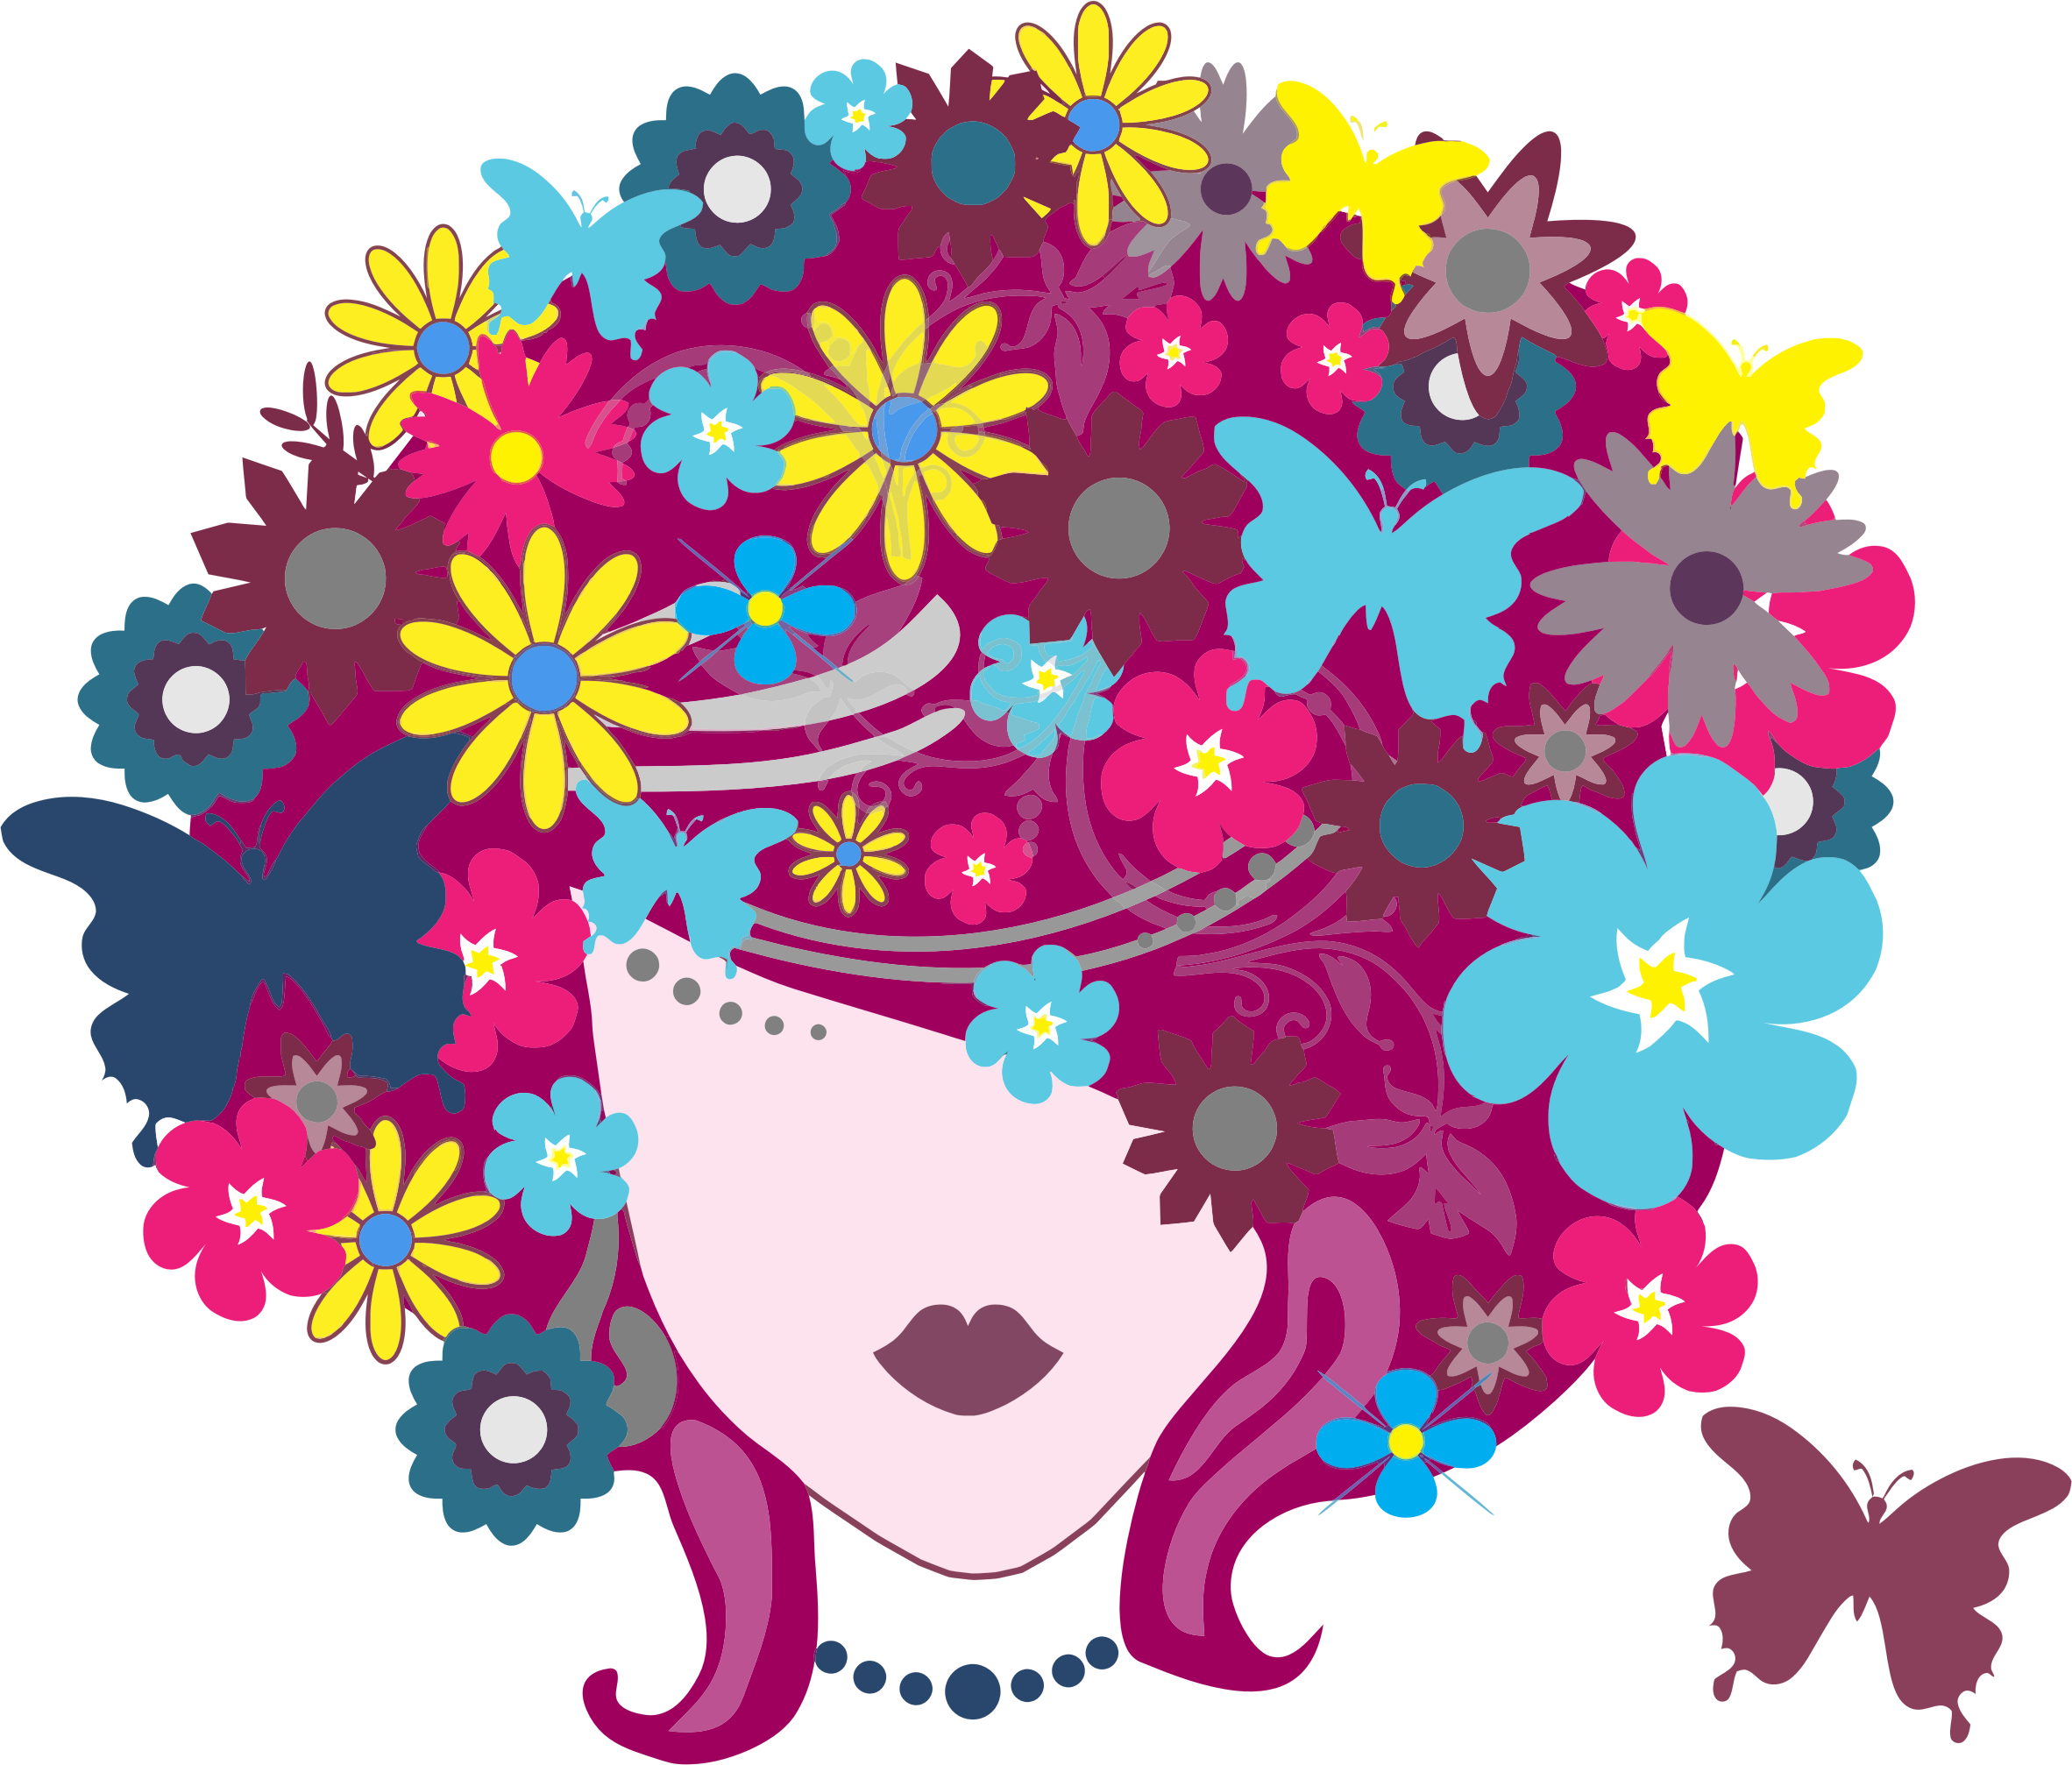 Clipart hair flower image royalty free library Clipart - Floral Butterfly Hair Woman image royalty free library